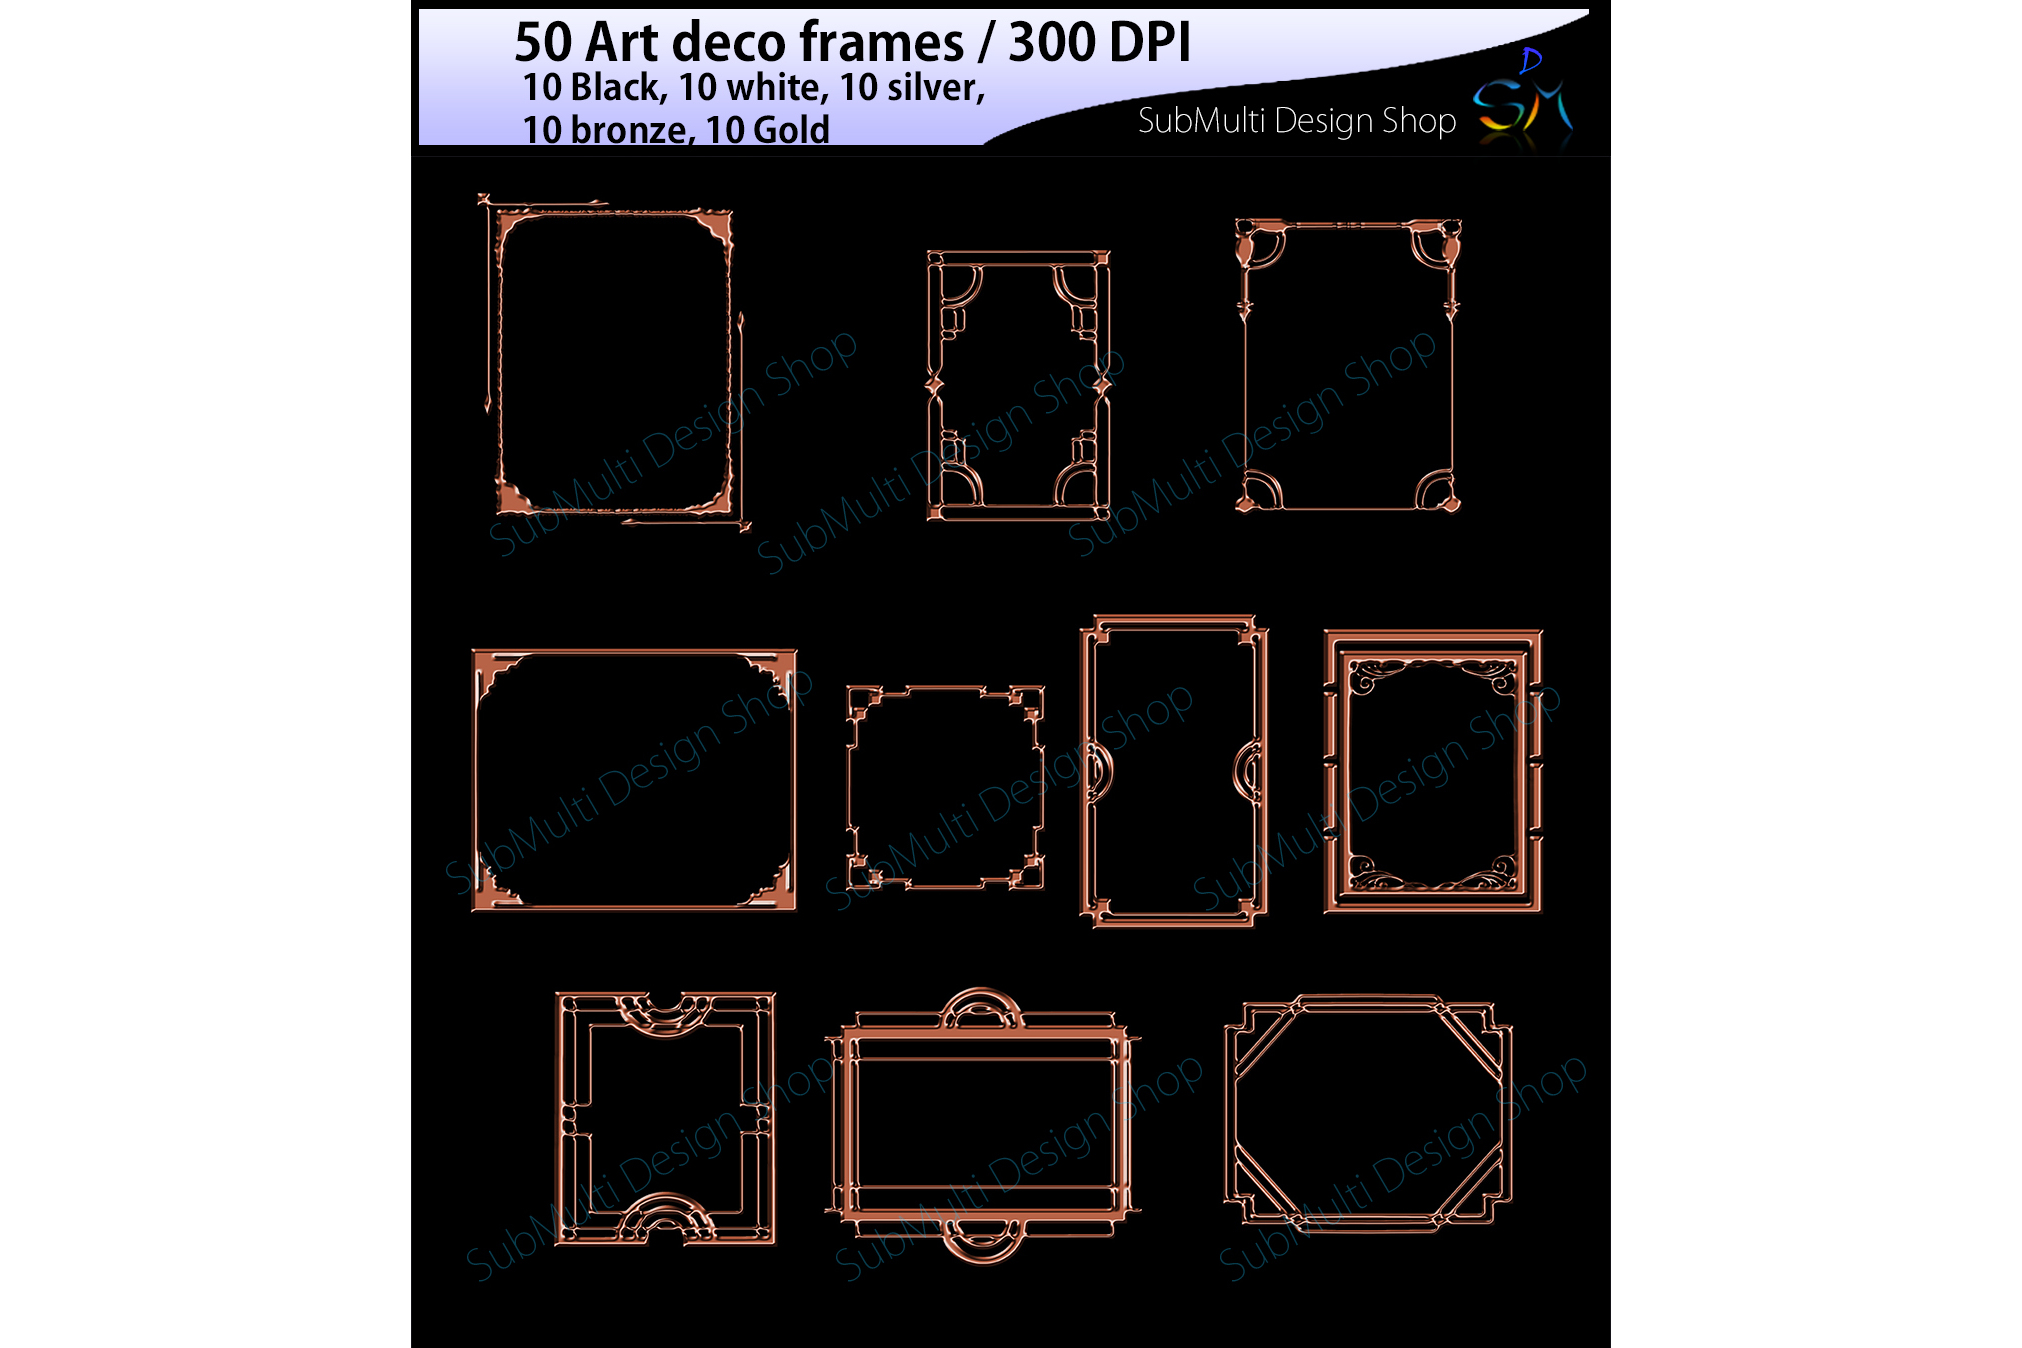 art deco frames / art deco frames clipart / art deco frames silhouette / art deco gold frames / art deco silver frame / digital/High Quality example image 2